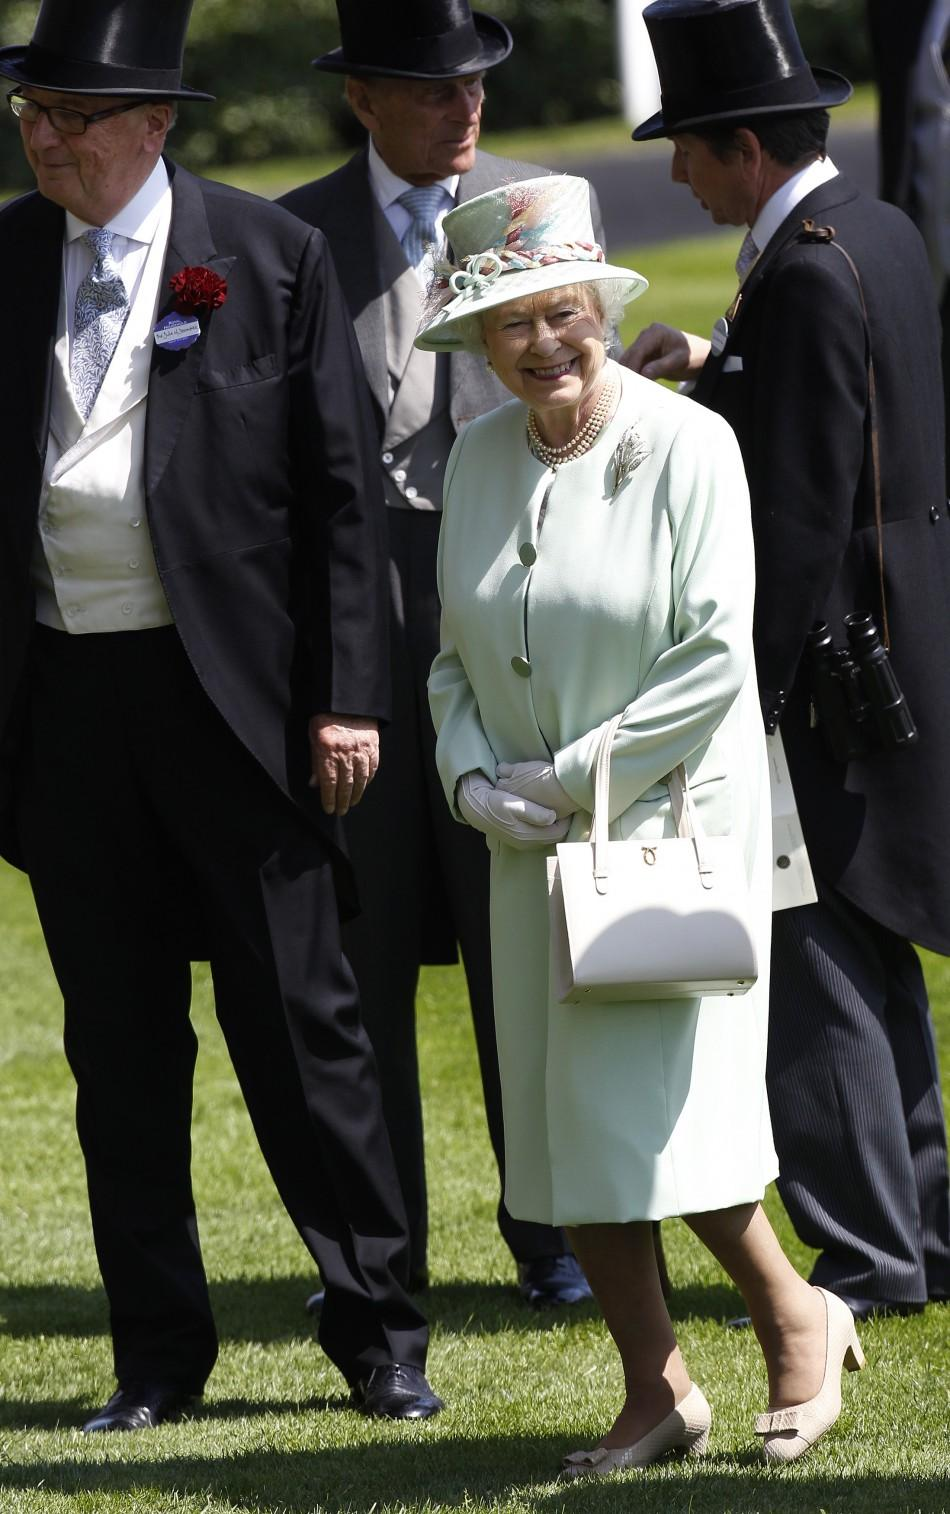 Britain's Queen Elizabeth arrives for the first day of racing at Royal Ascot in southern England